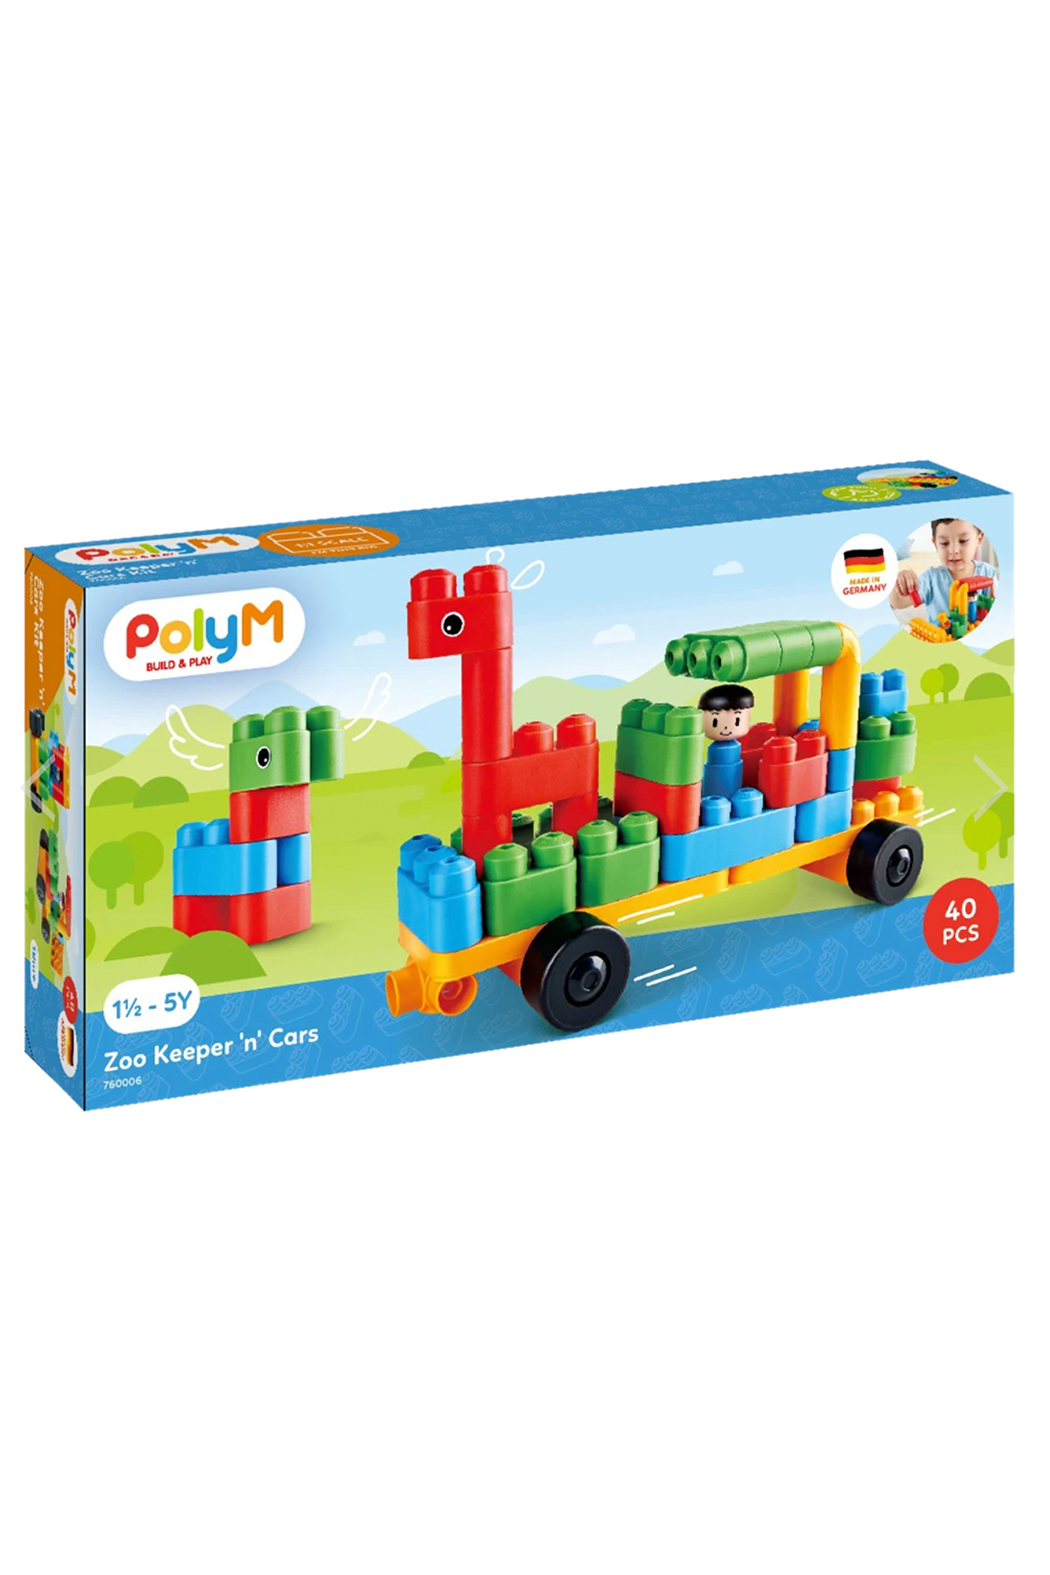 Hape  Polym - Zoo Keeper'n Cars - Main Image